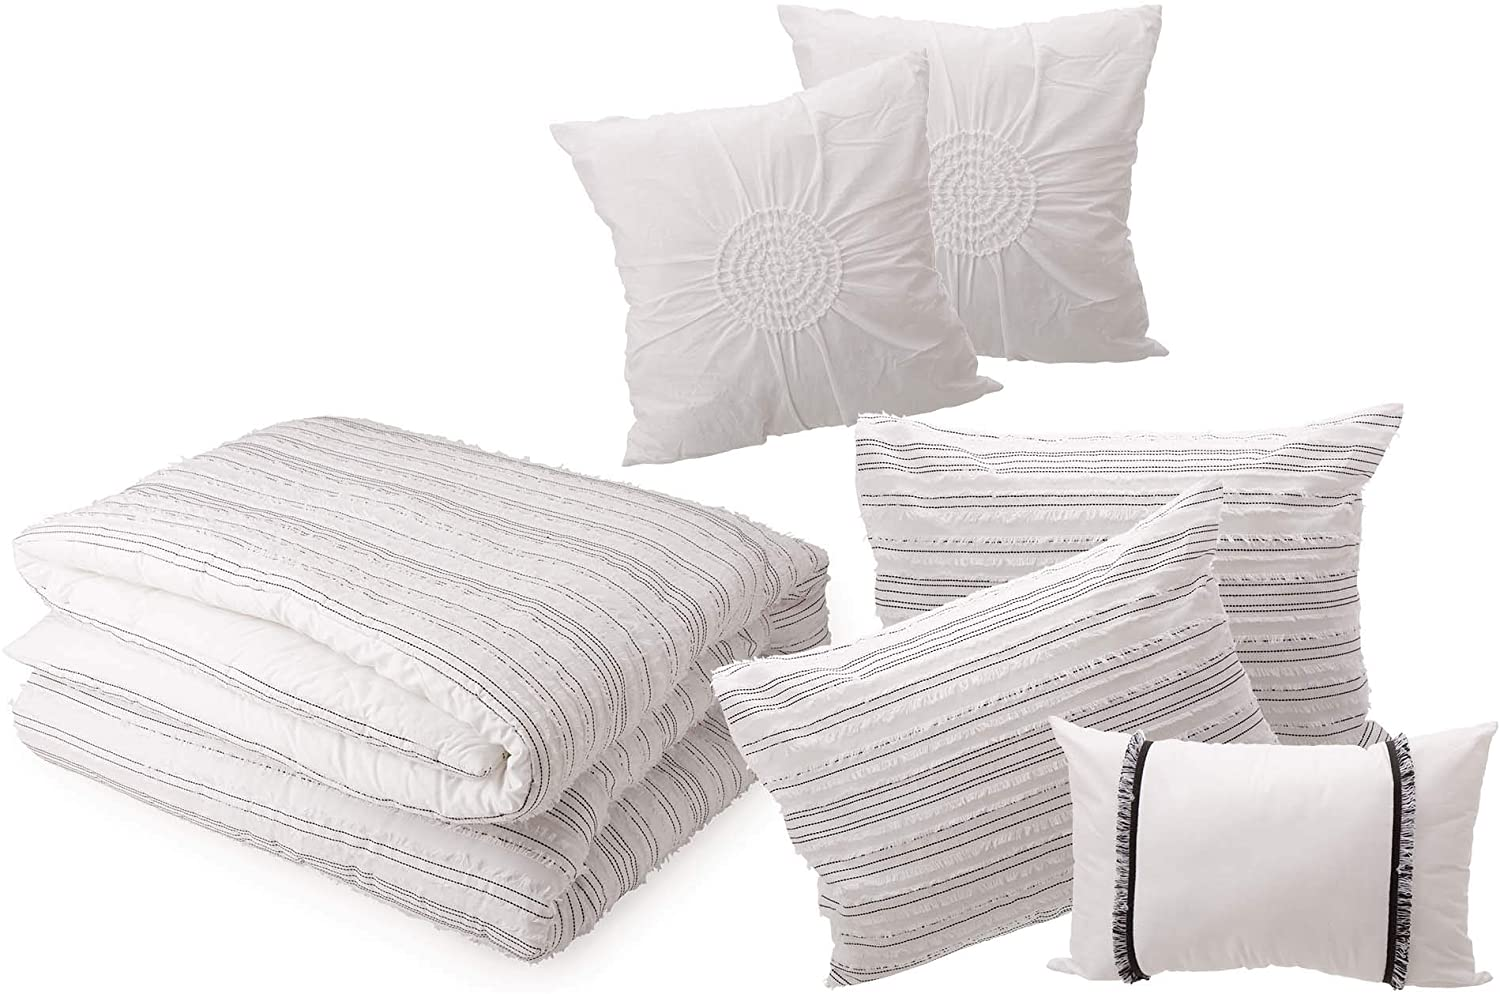 Glitzhome 6 Pcs 100% Cotton Striped Comforter Set Soft Comfortable Lightweight Bedding Set with 2 Pillow Sham and 3 Pillow for All Season, Full Queen